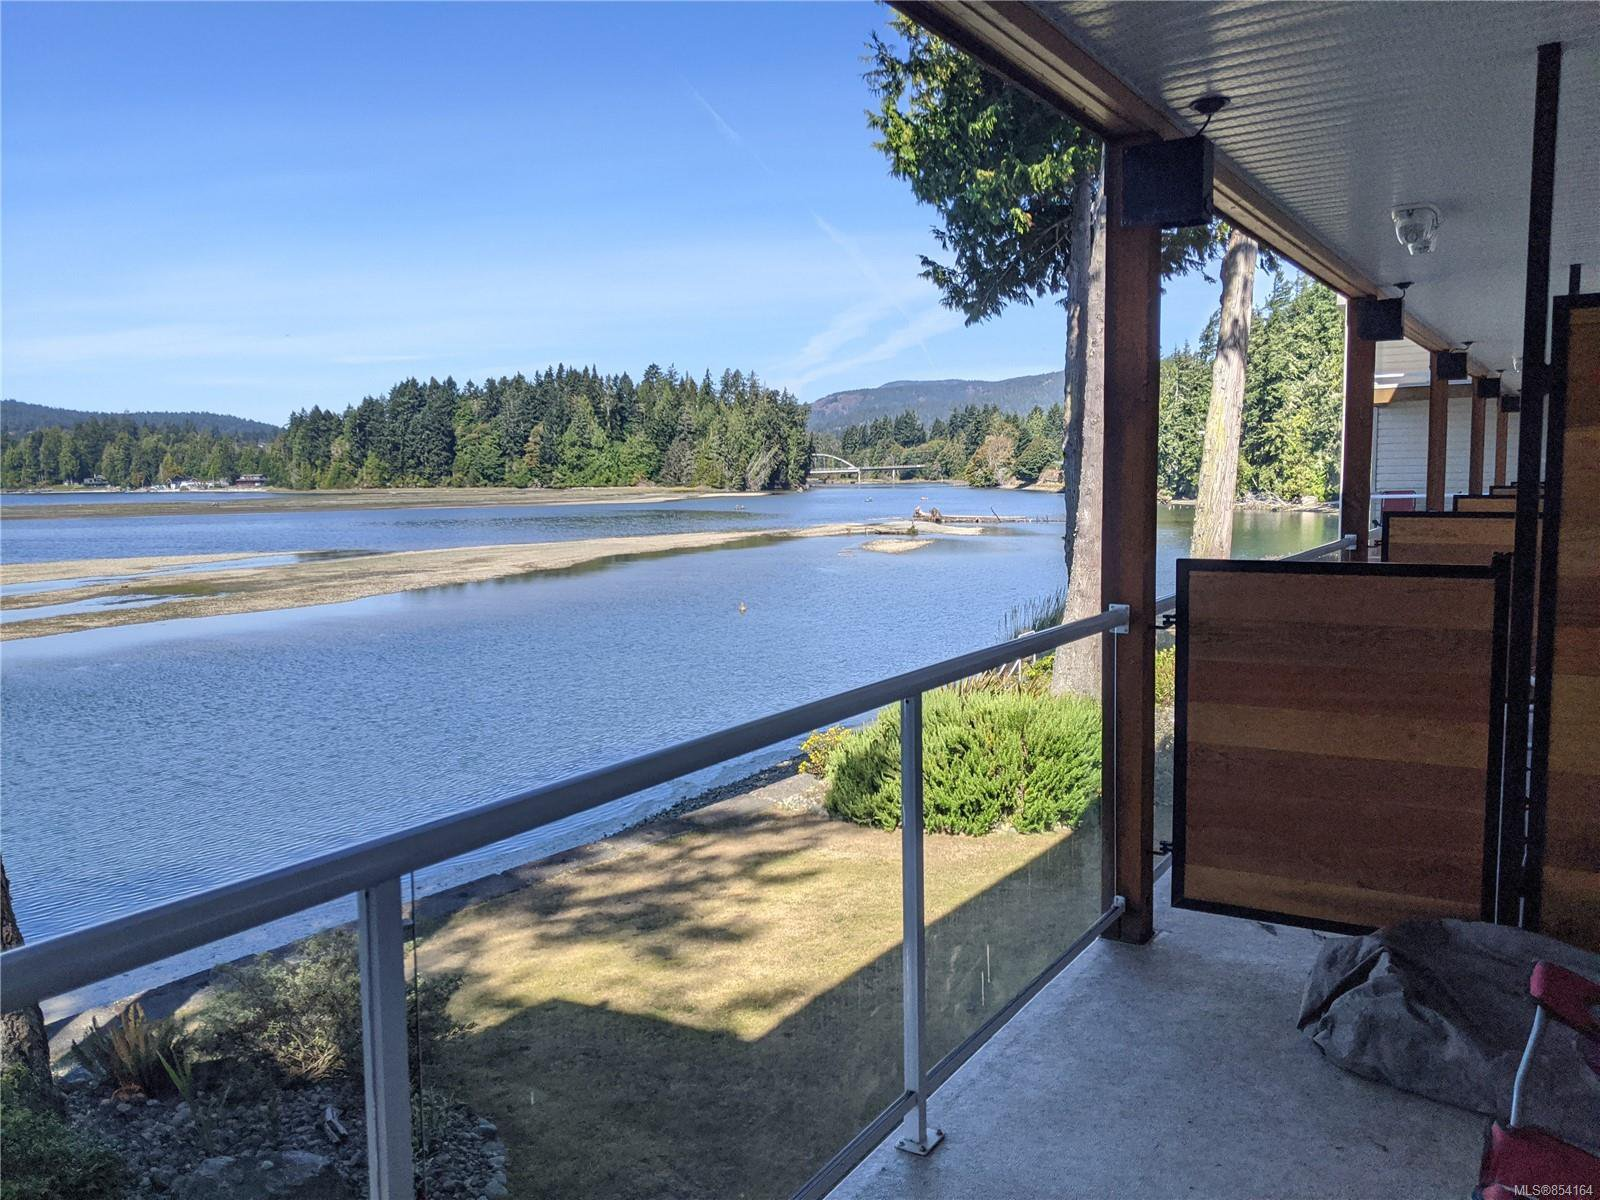 Main Photo: 13 1976 Glenidle Rd in : Sk Billings Spit Condo for sale (Sooke)  : MLS®# 854164